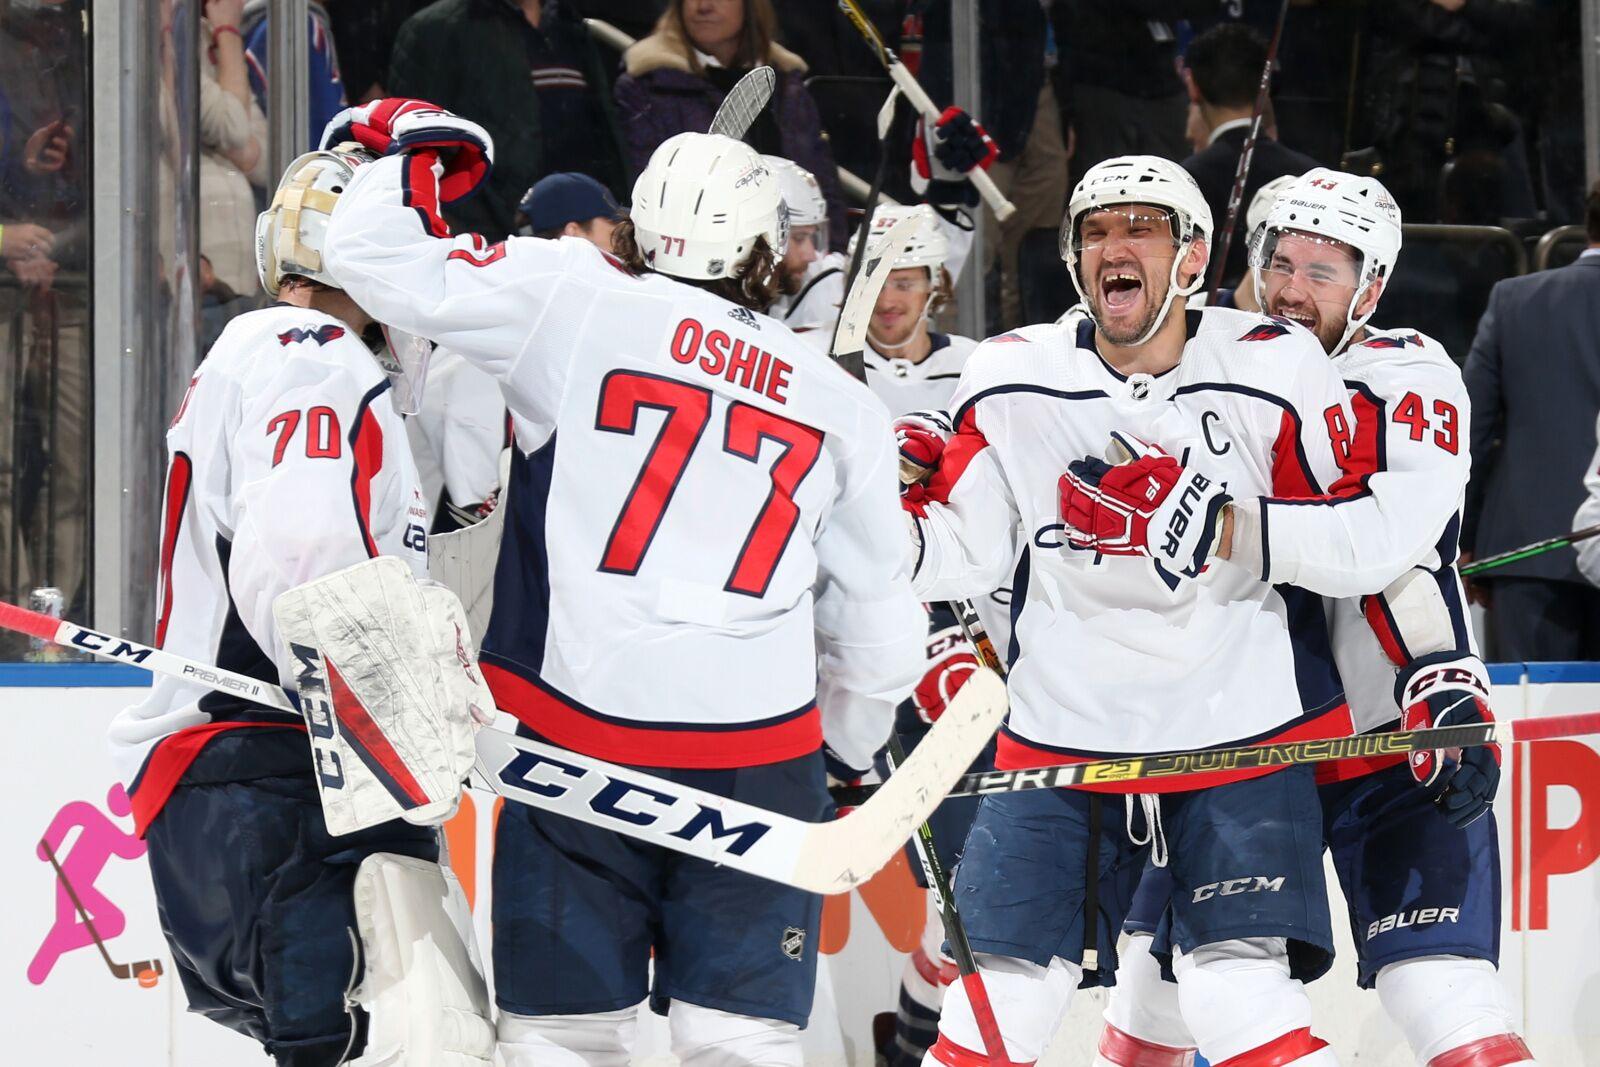 1a9a2cdd449 Washington Capitals Defeat New York Rangers 3-2 Sunday Afternoon in a  Shootout